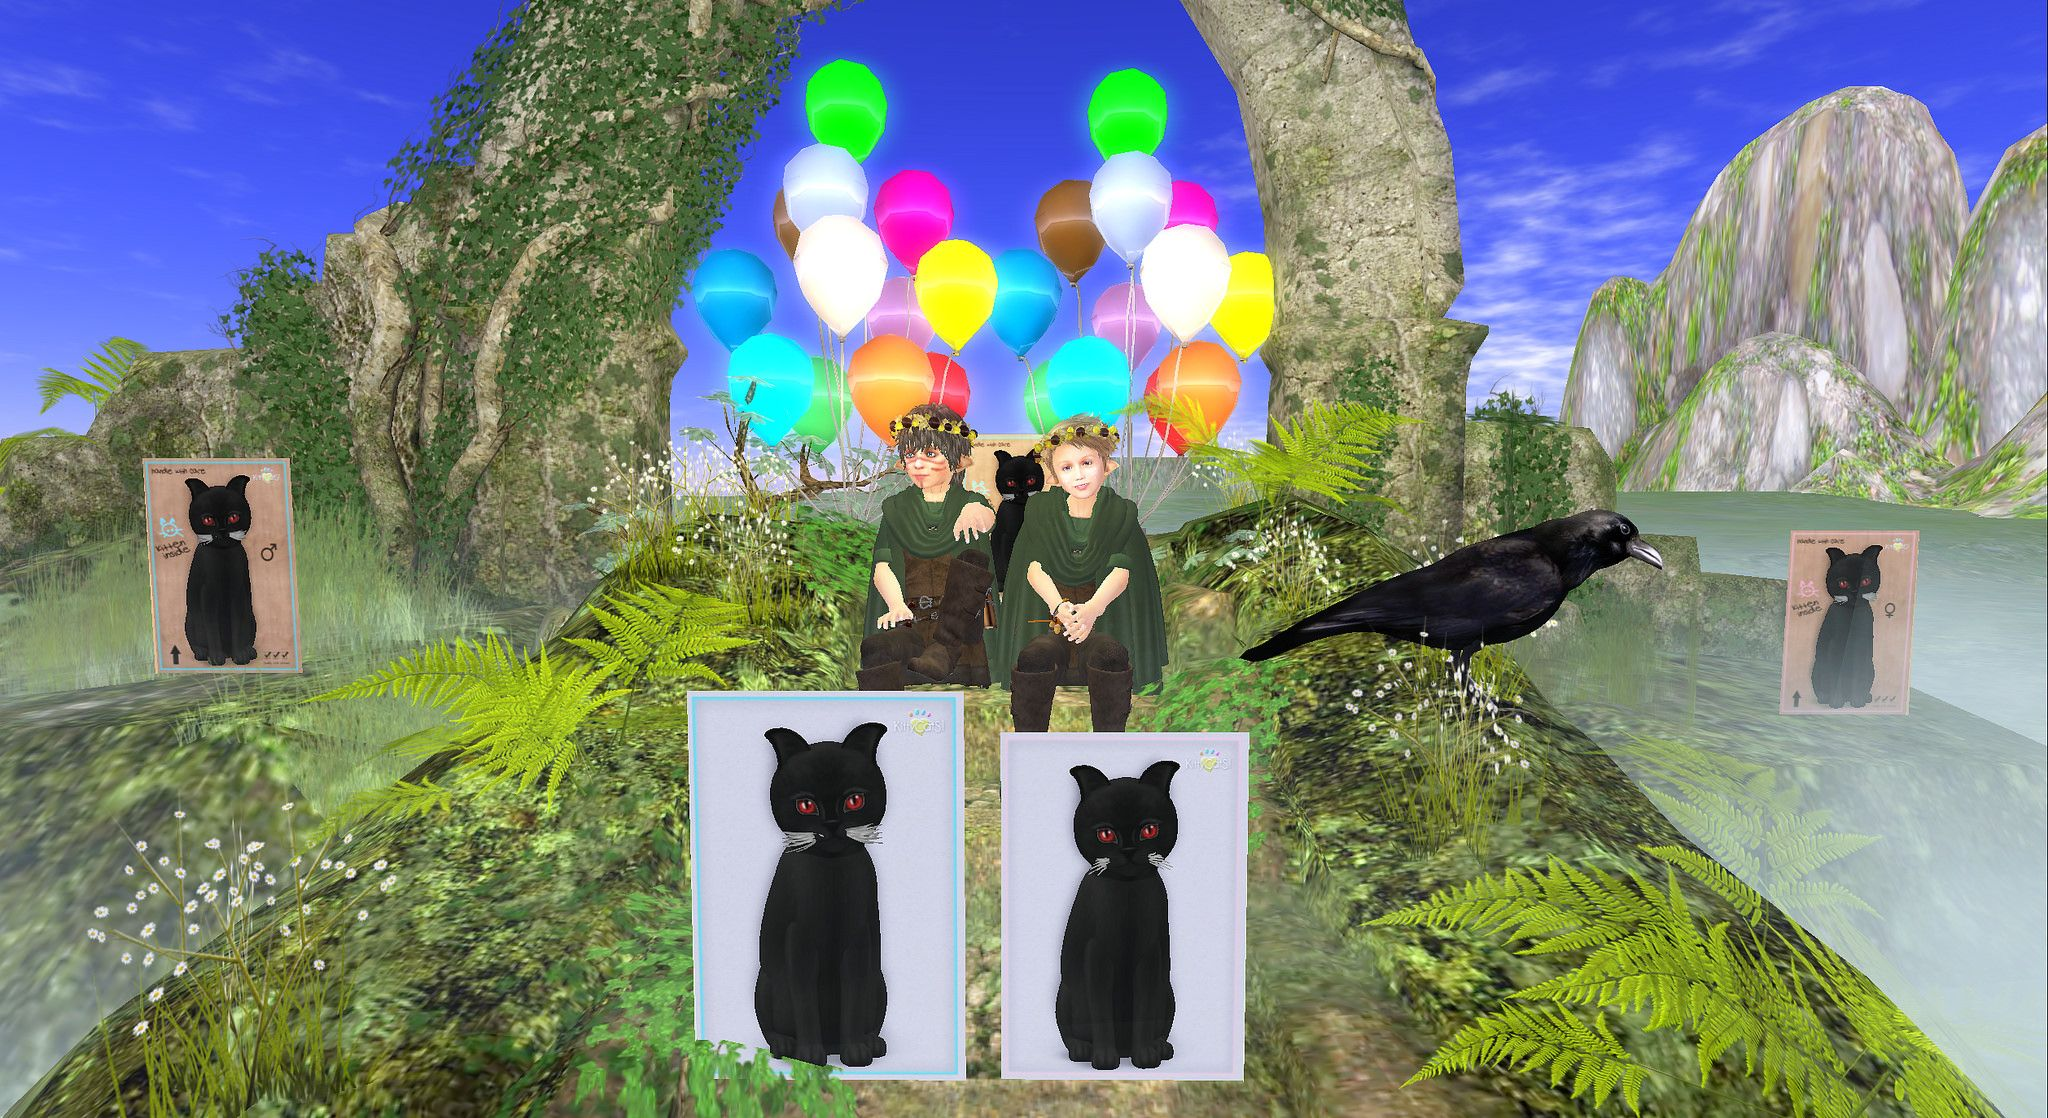 https://flic.kr/p/me5HbL | The Vampire Kitties Return! | Hooray!  Let the celebration begin.  The Vamipre Kitties drove out the remaining foxie foxie interlopers!  Long Live the Vampire King! maps.secondlife.com/secondlife/Vygg/41/43/85